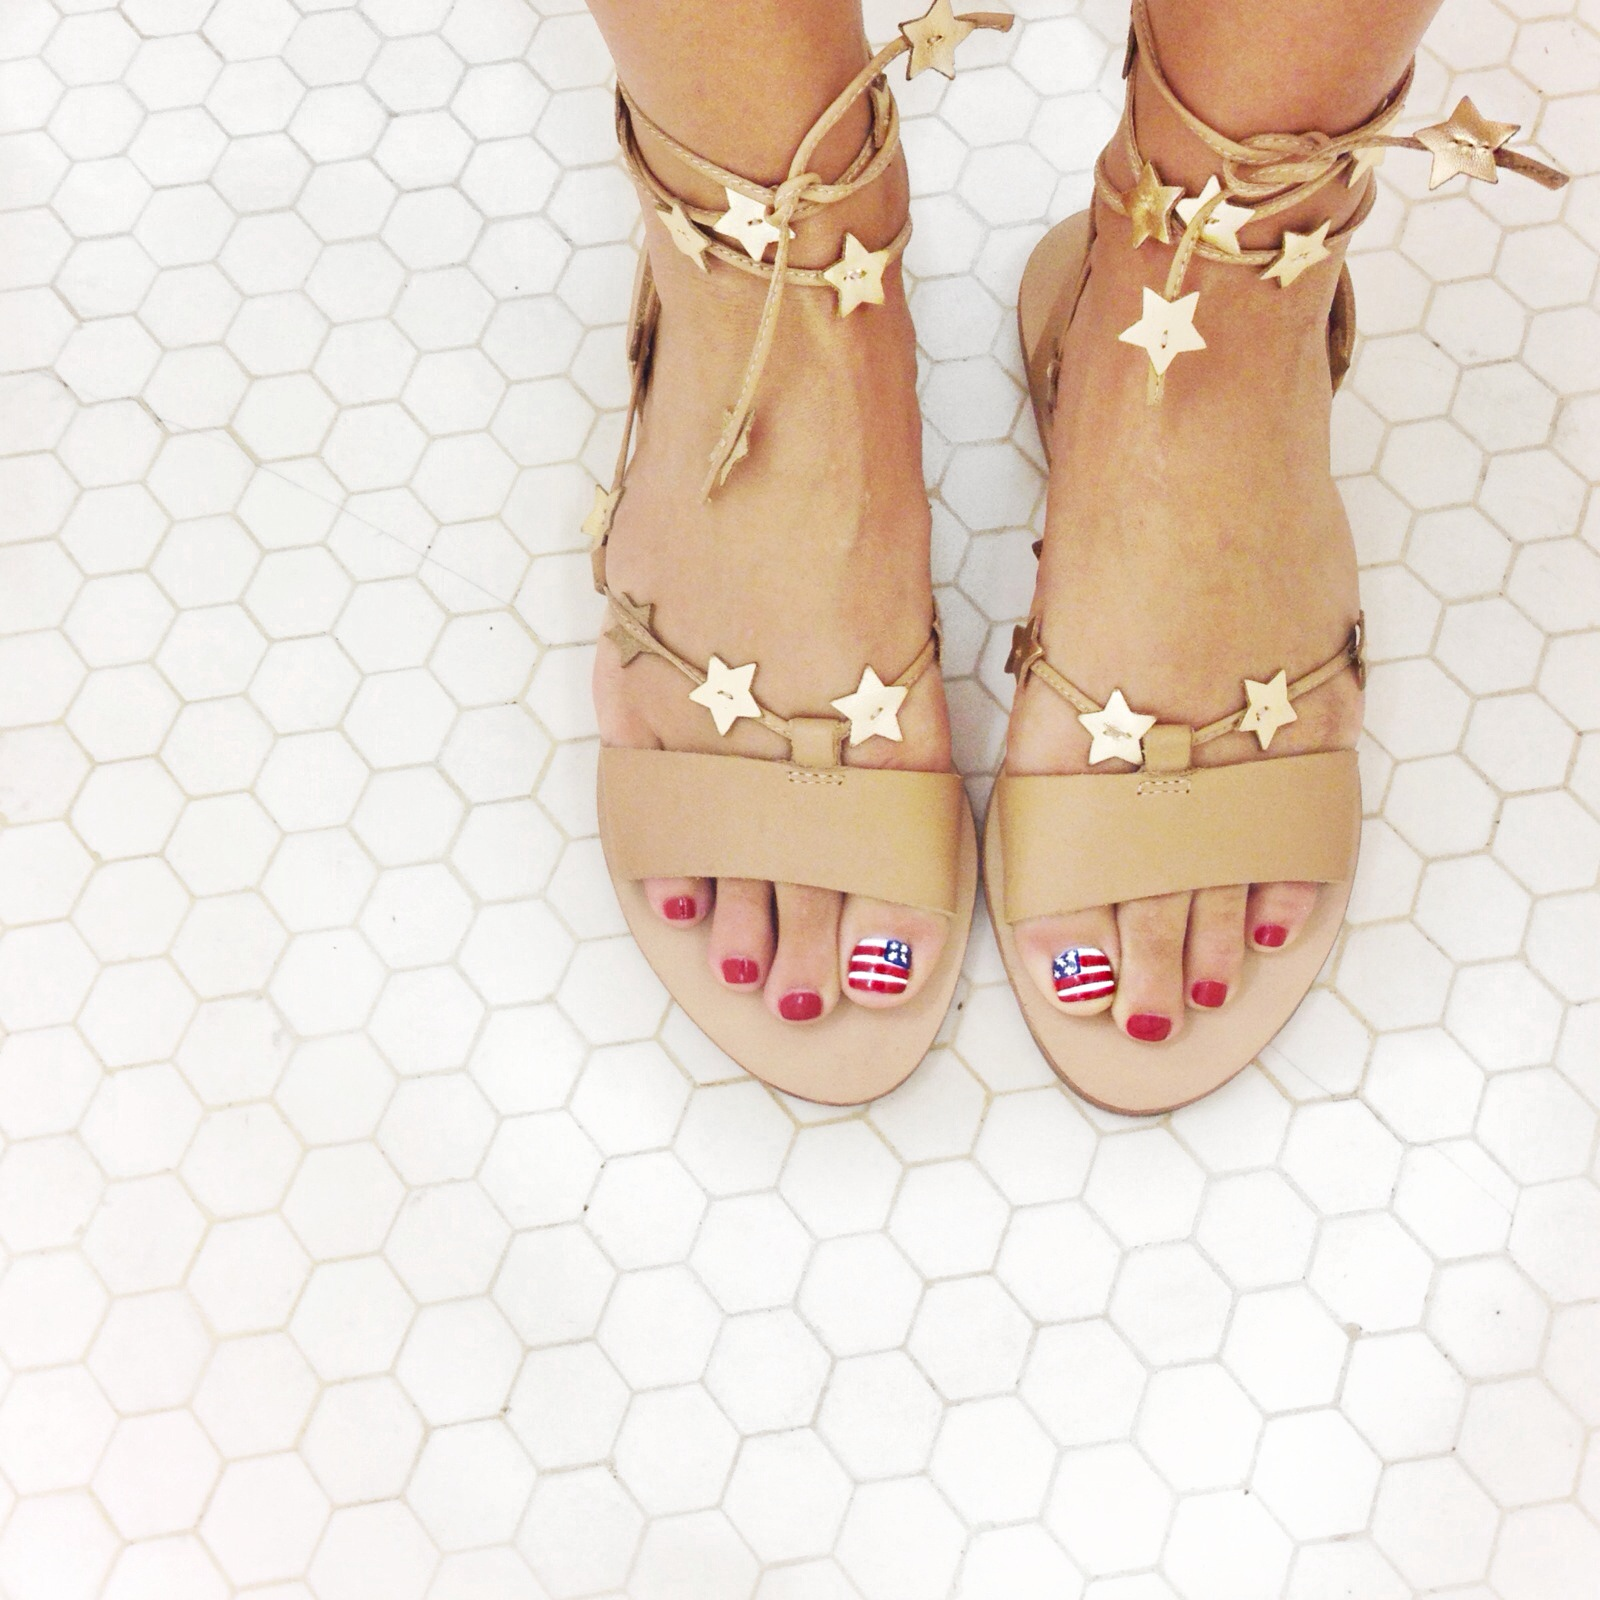 Loeffler Randall Star Wrap Sandals for the 4th